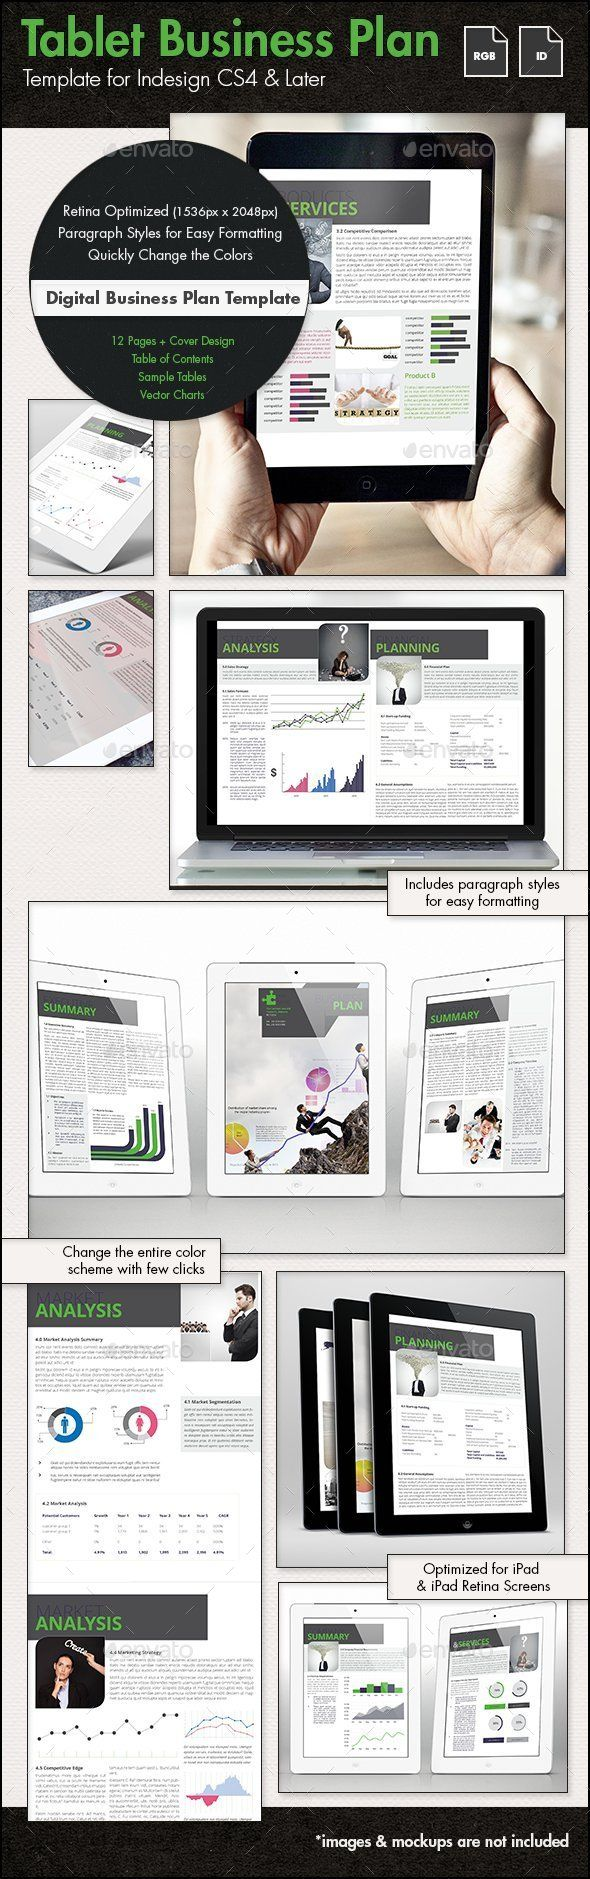 Best Startup Business Plan Template Ideas On Pinterest Small - Business plan template design